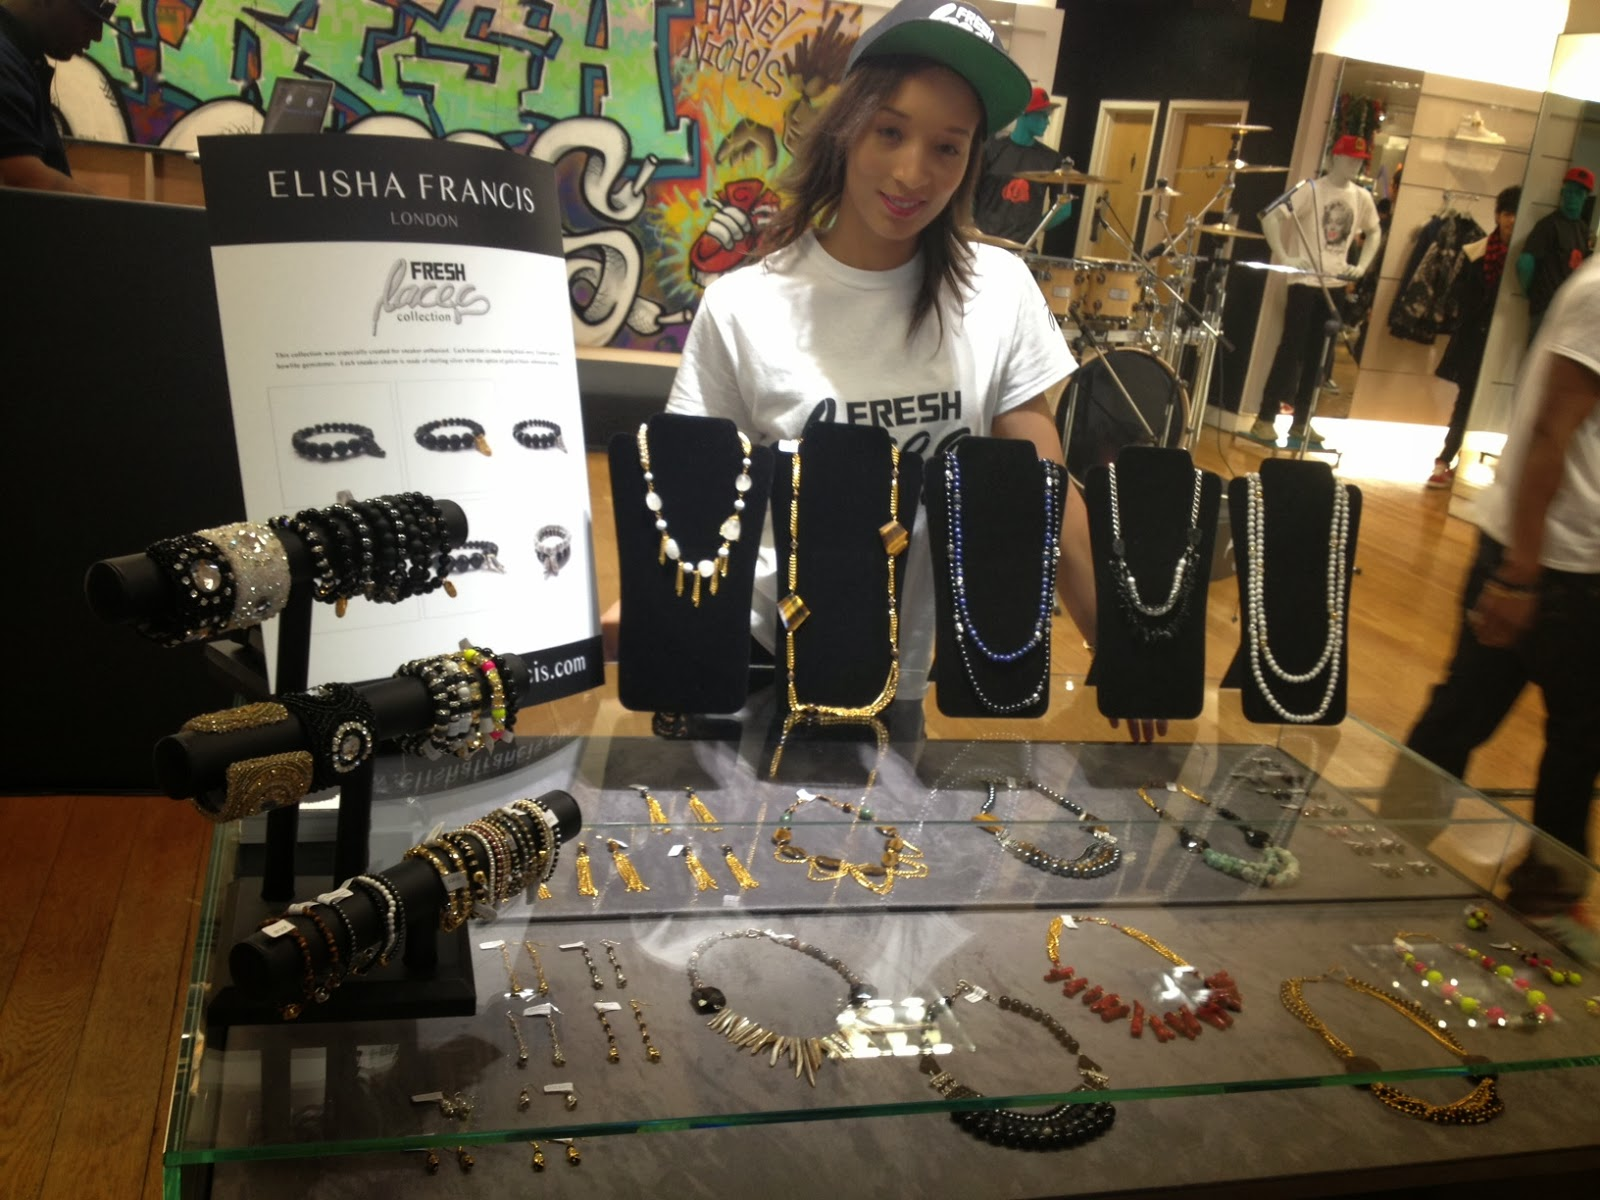 fresh laces, harvey nichols, manchester, elisha francis, sneaker event, jewelry